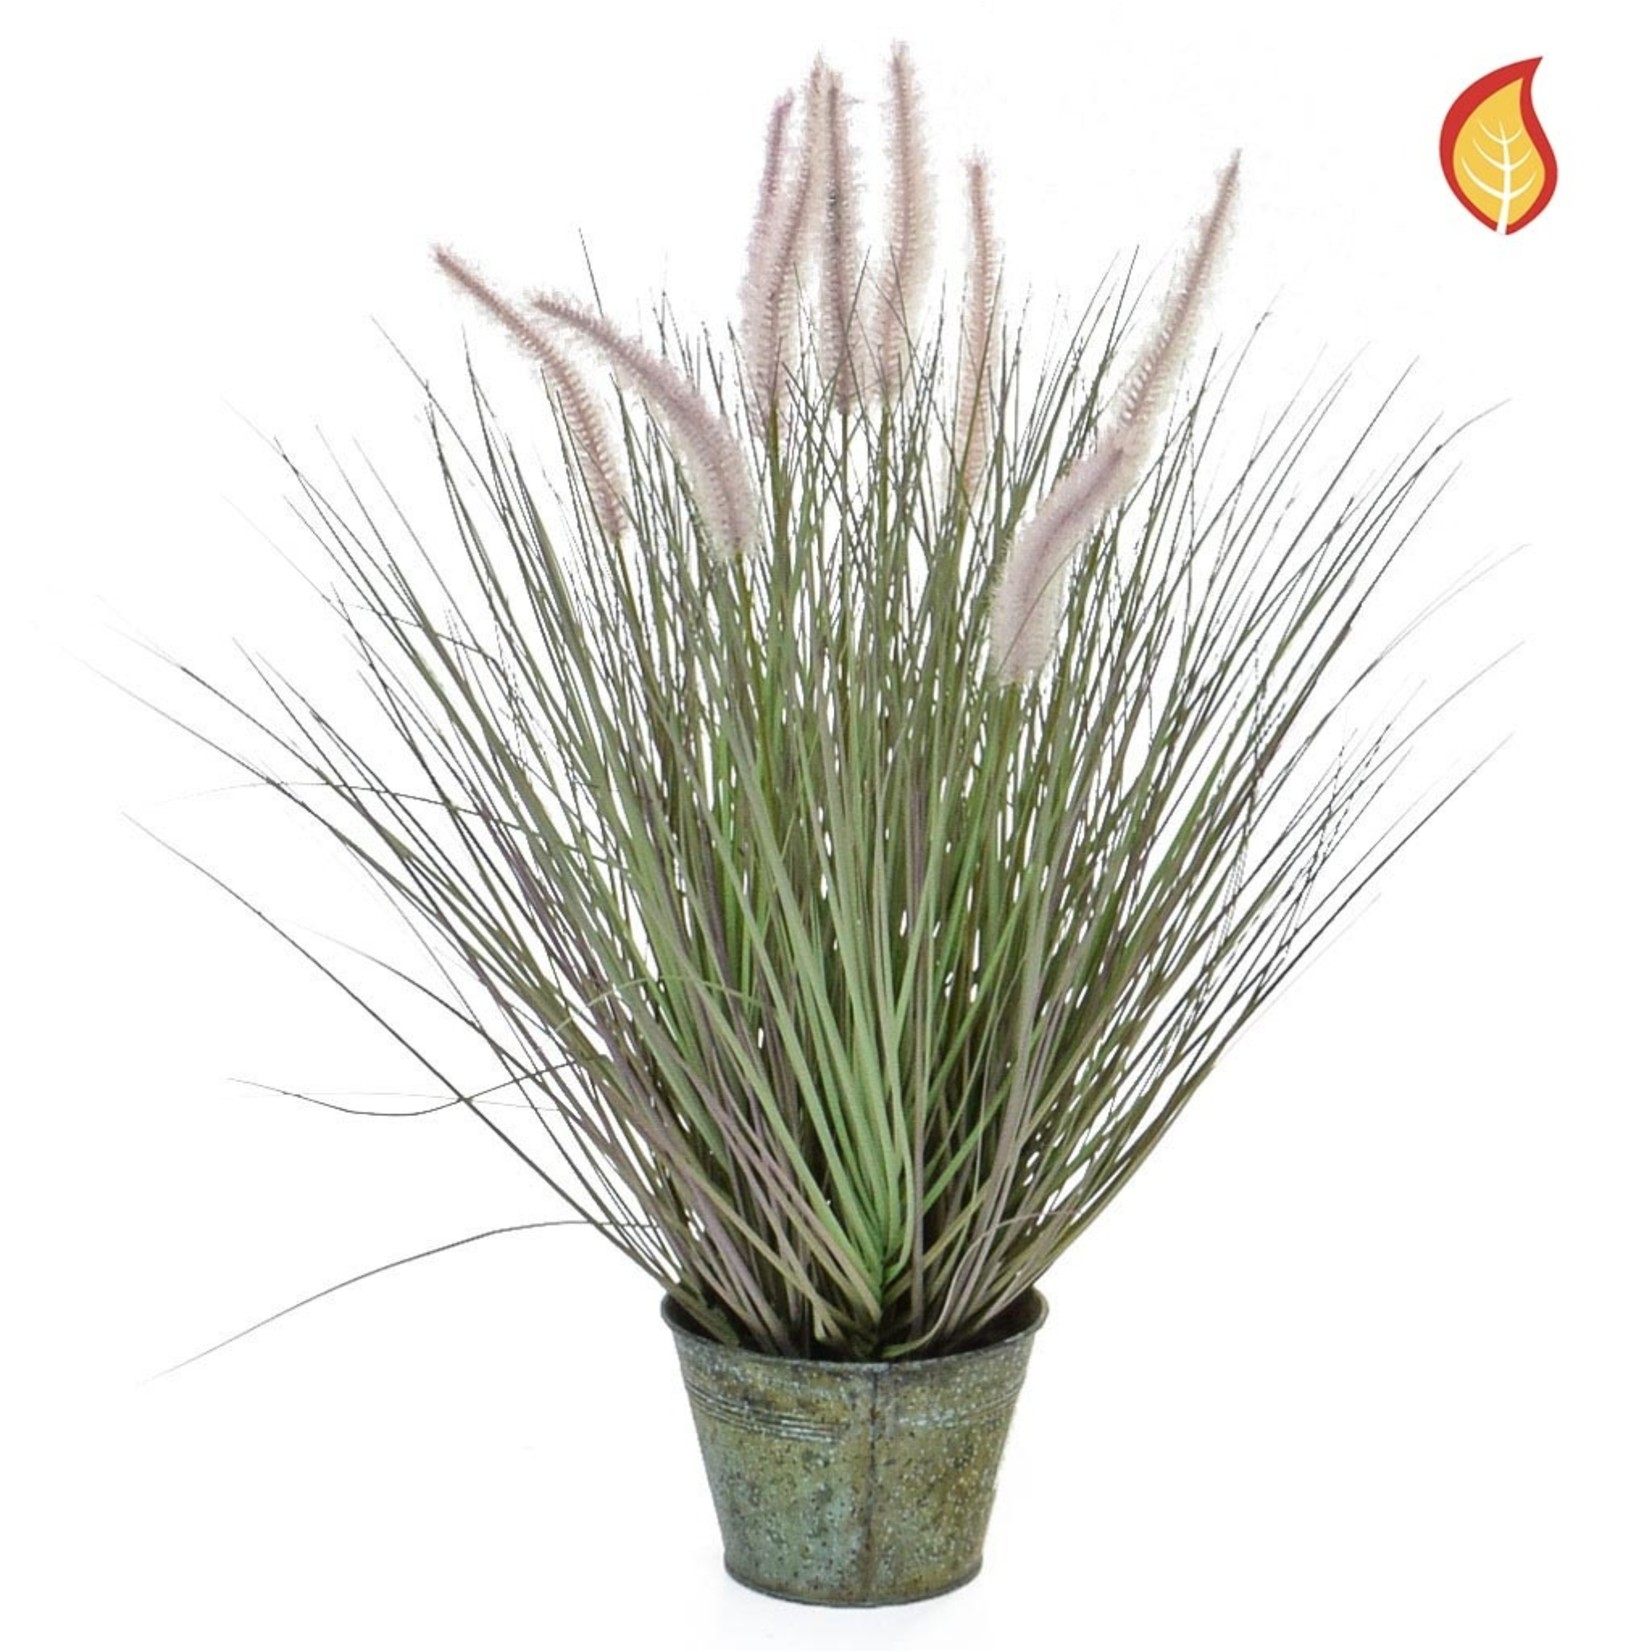 Grass Dogtail Grass with metal pot 58cm - Fire Rated